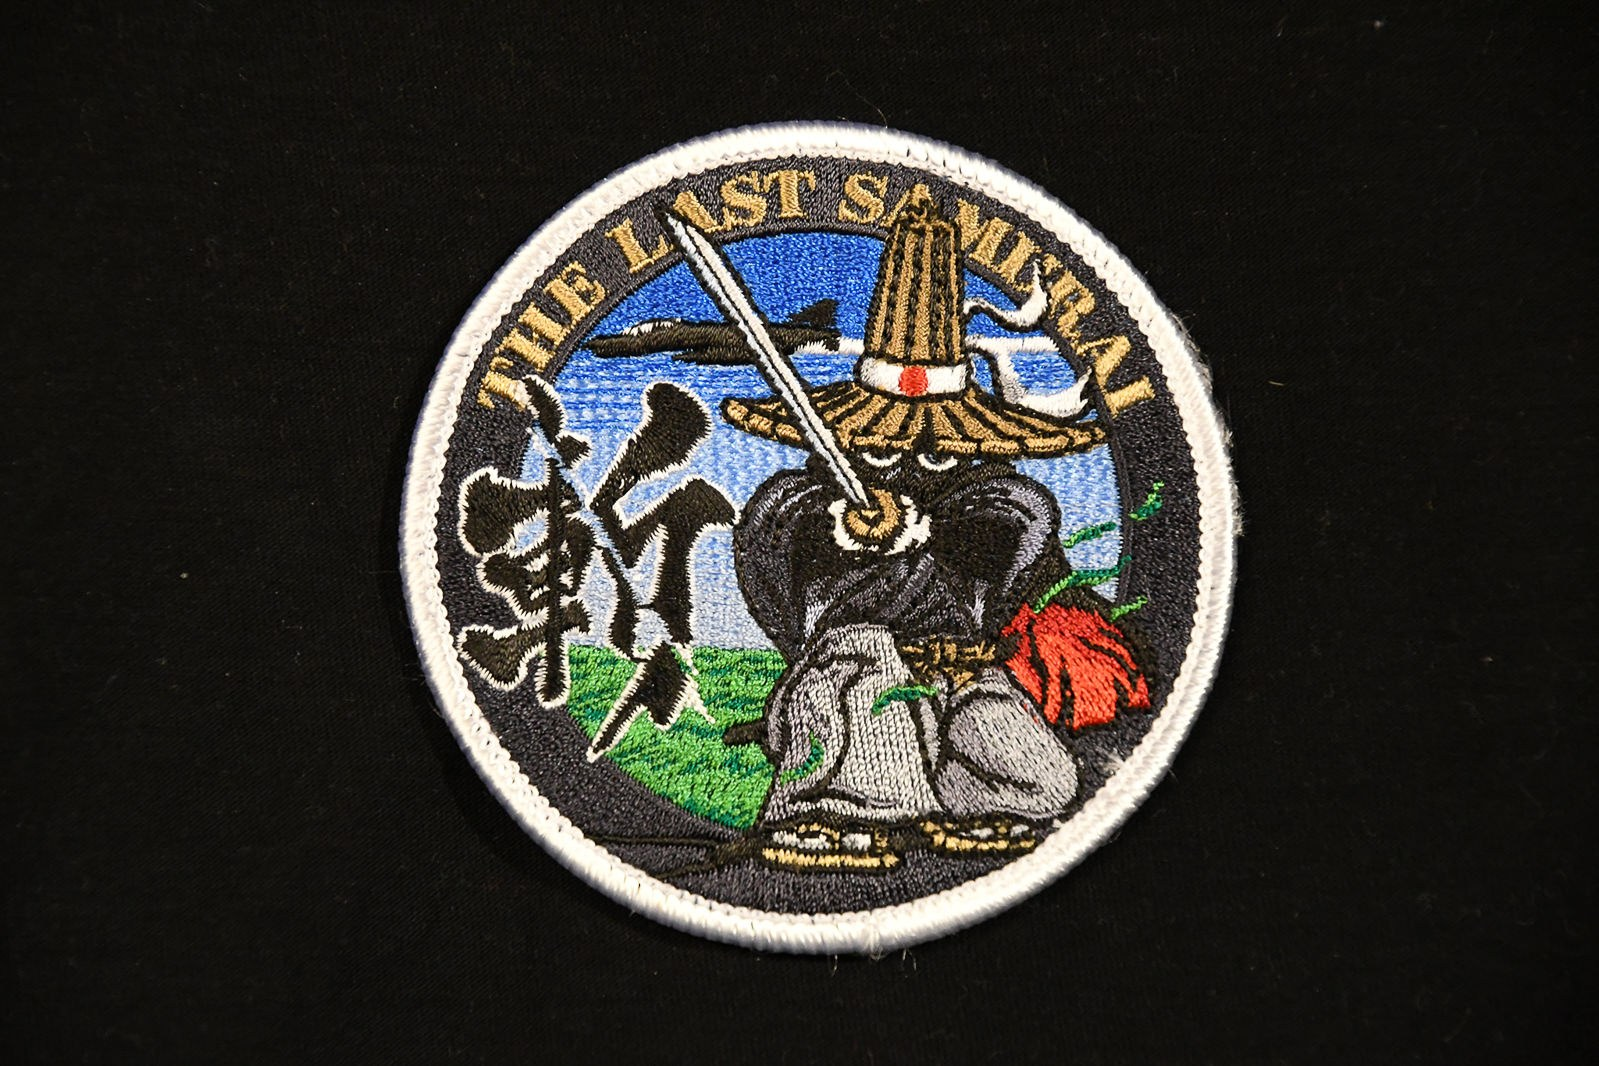 ps5_1311-patch-afscheid-302-tfs-peter-steendam